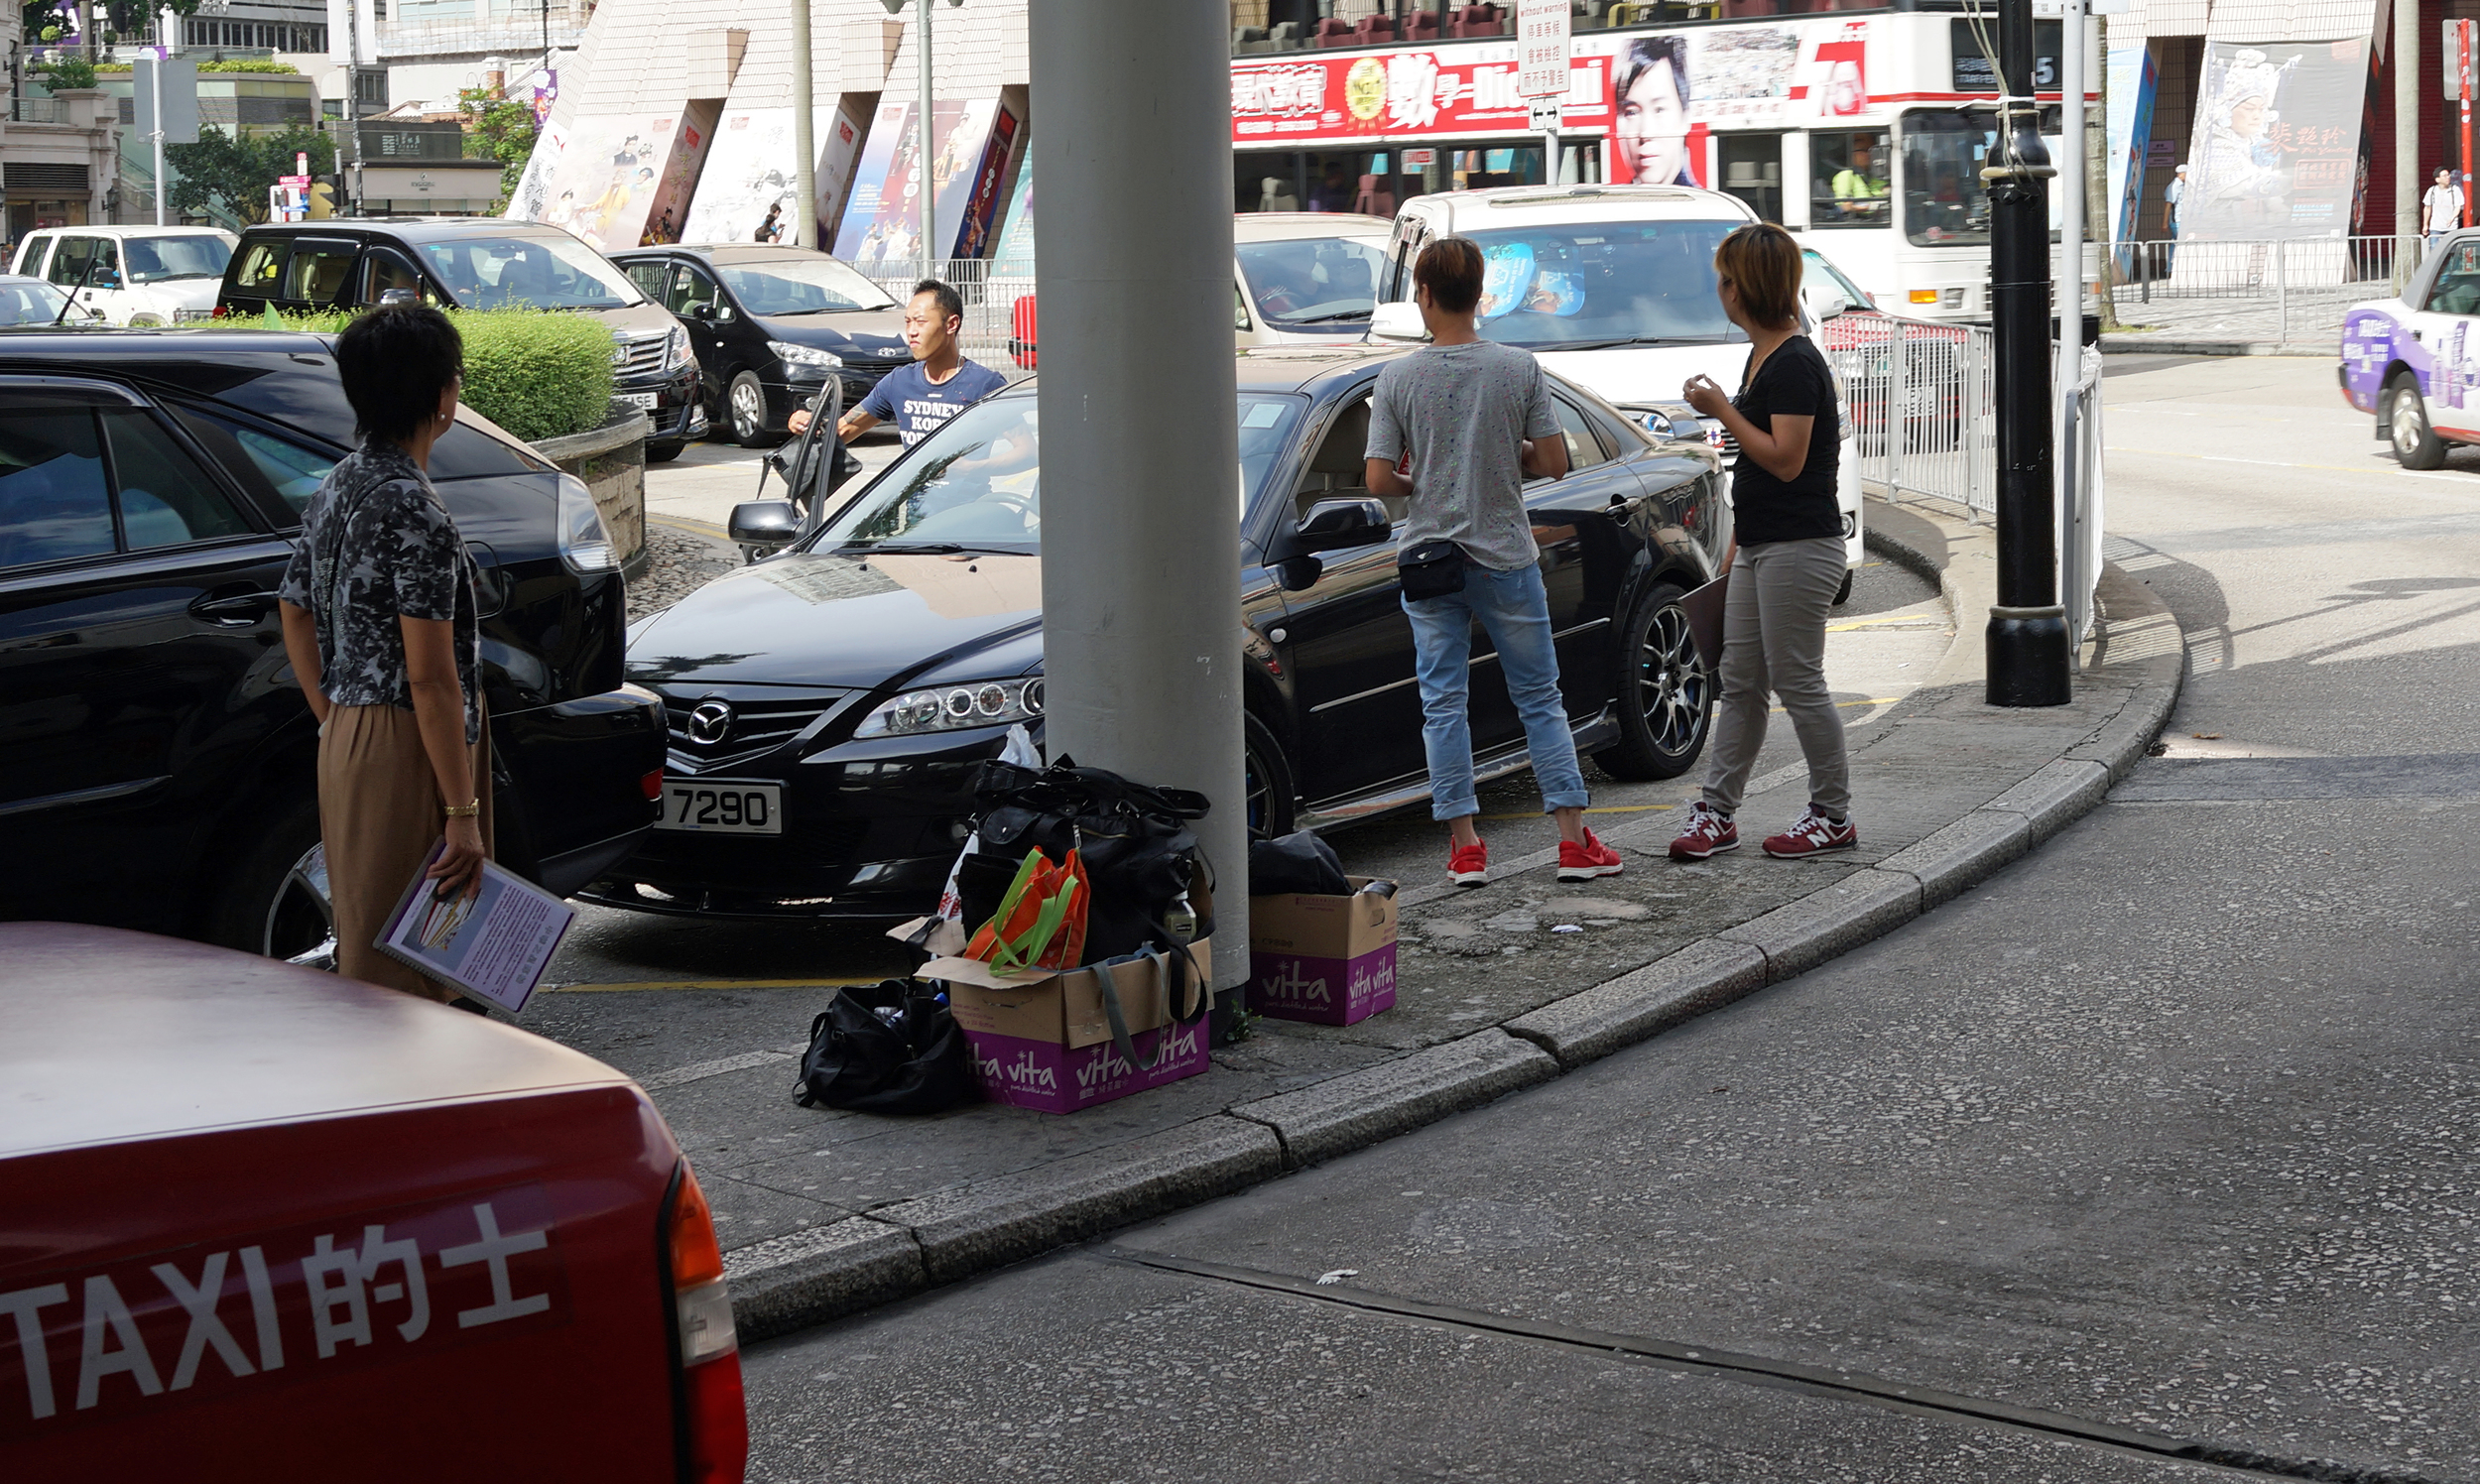 The guys and gals around the black Toyota are gang members, they control the seemingly hundreds of women who tout for business in and around the Star Ferry Kowloon and Canton Road - they offer berths on the gambling ships